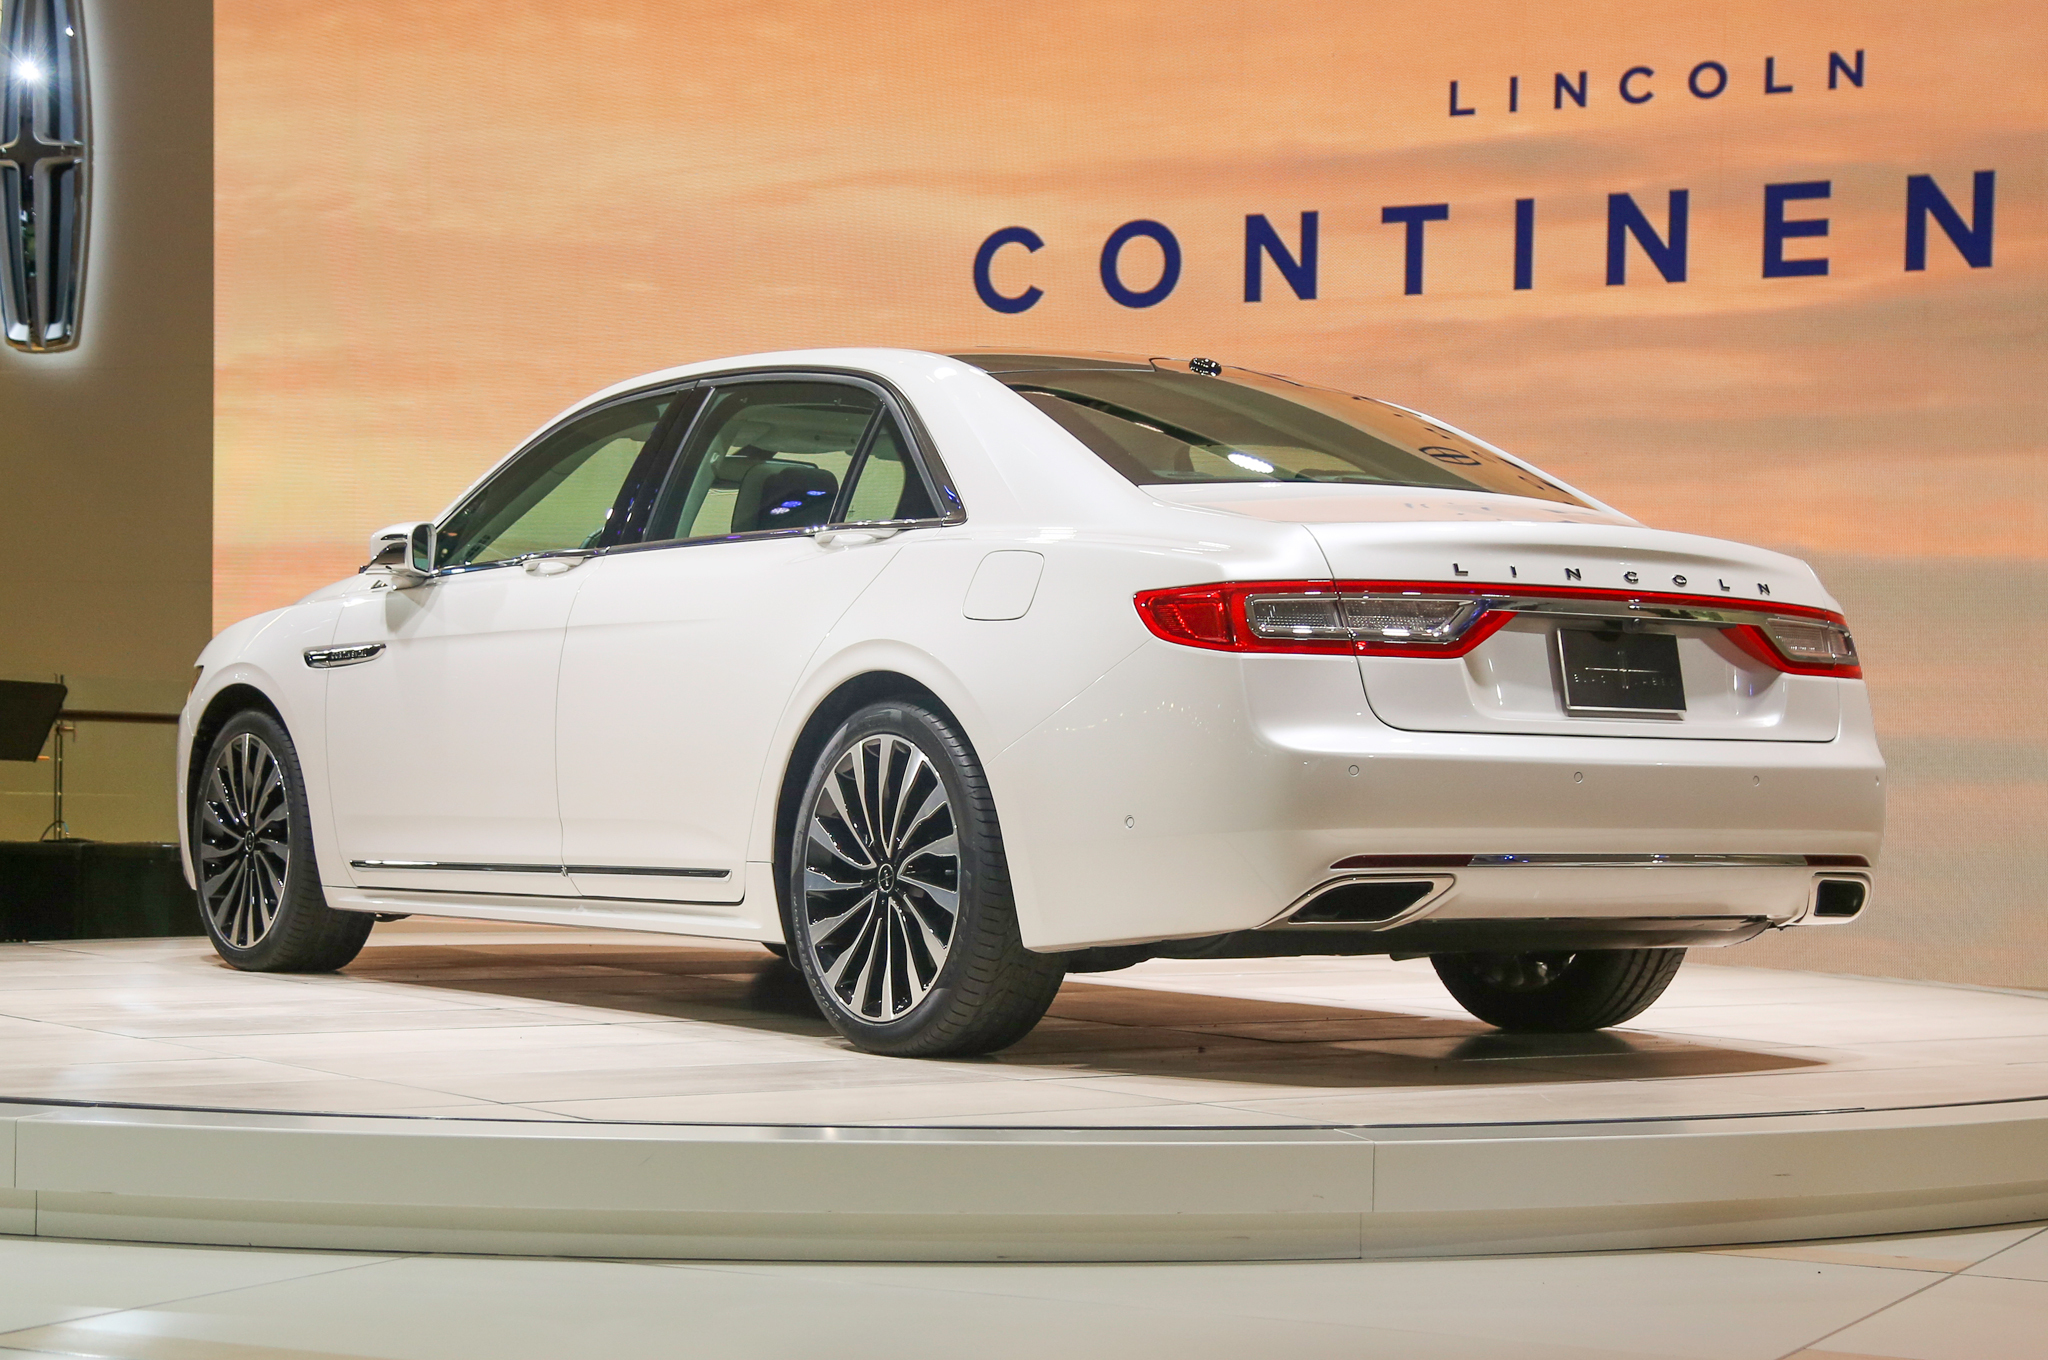 Lincoln Continental 2017 High Quality Wallpapers